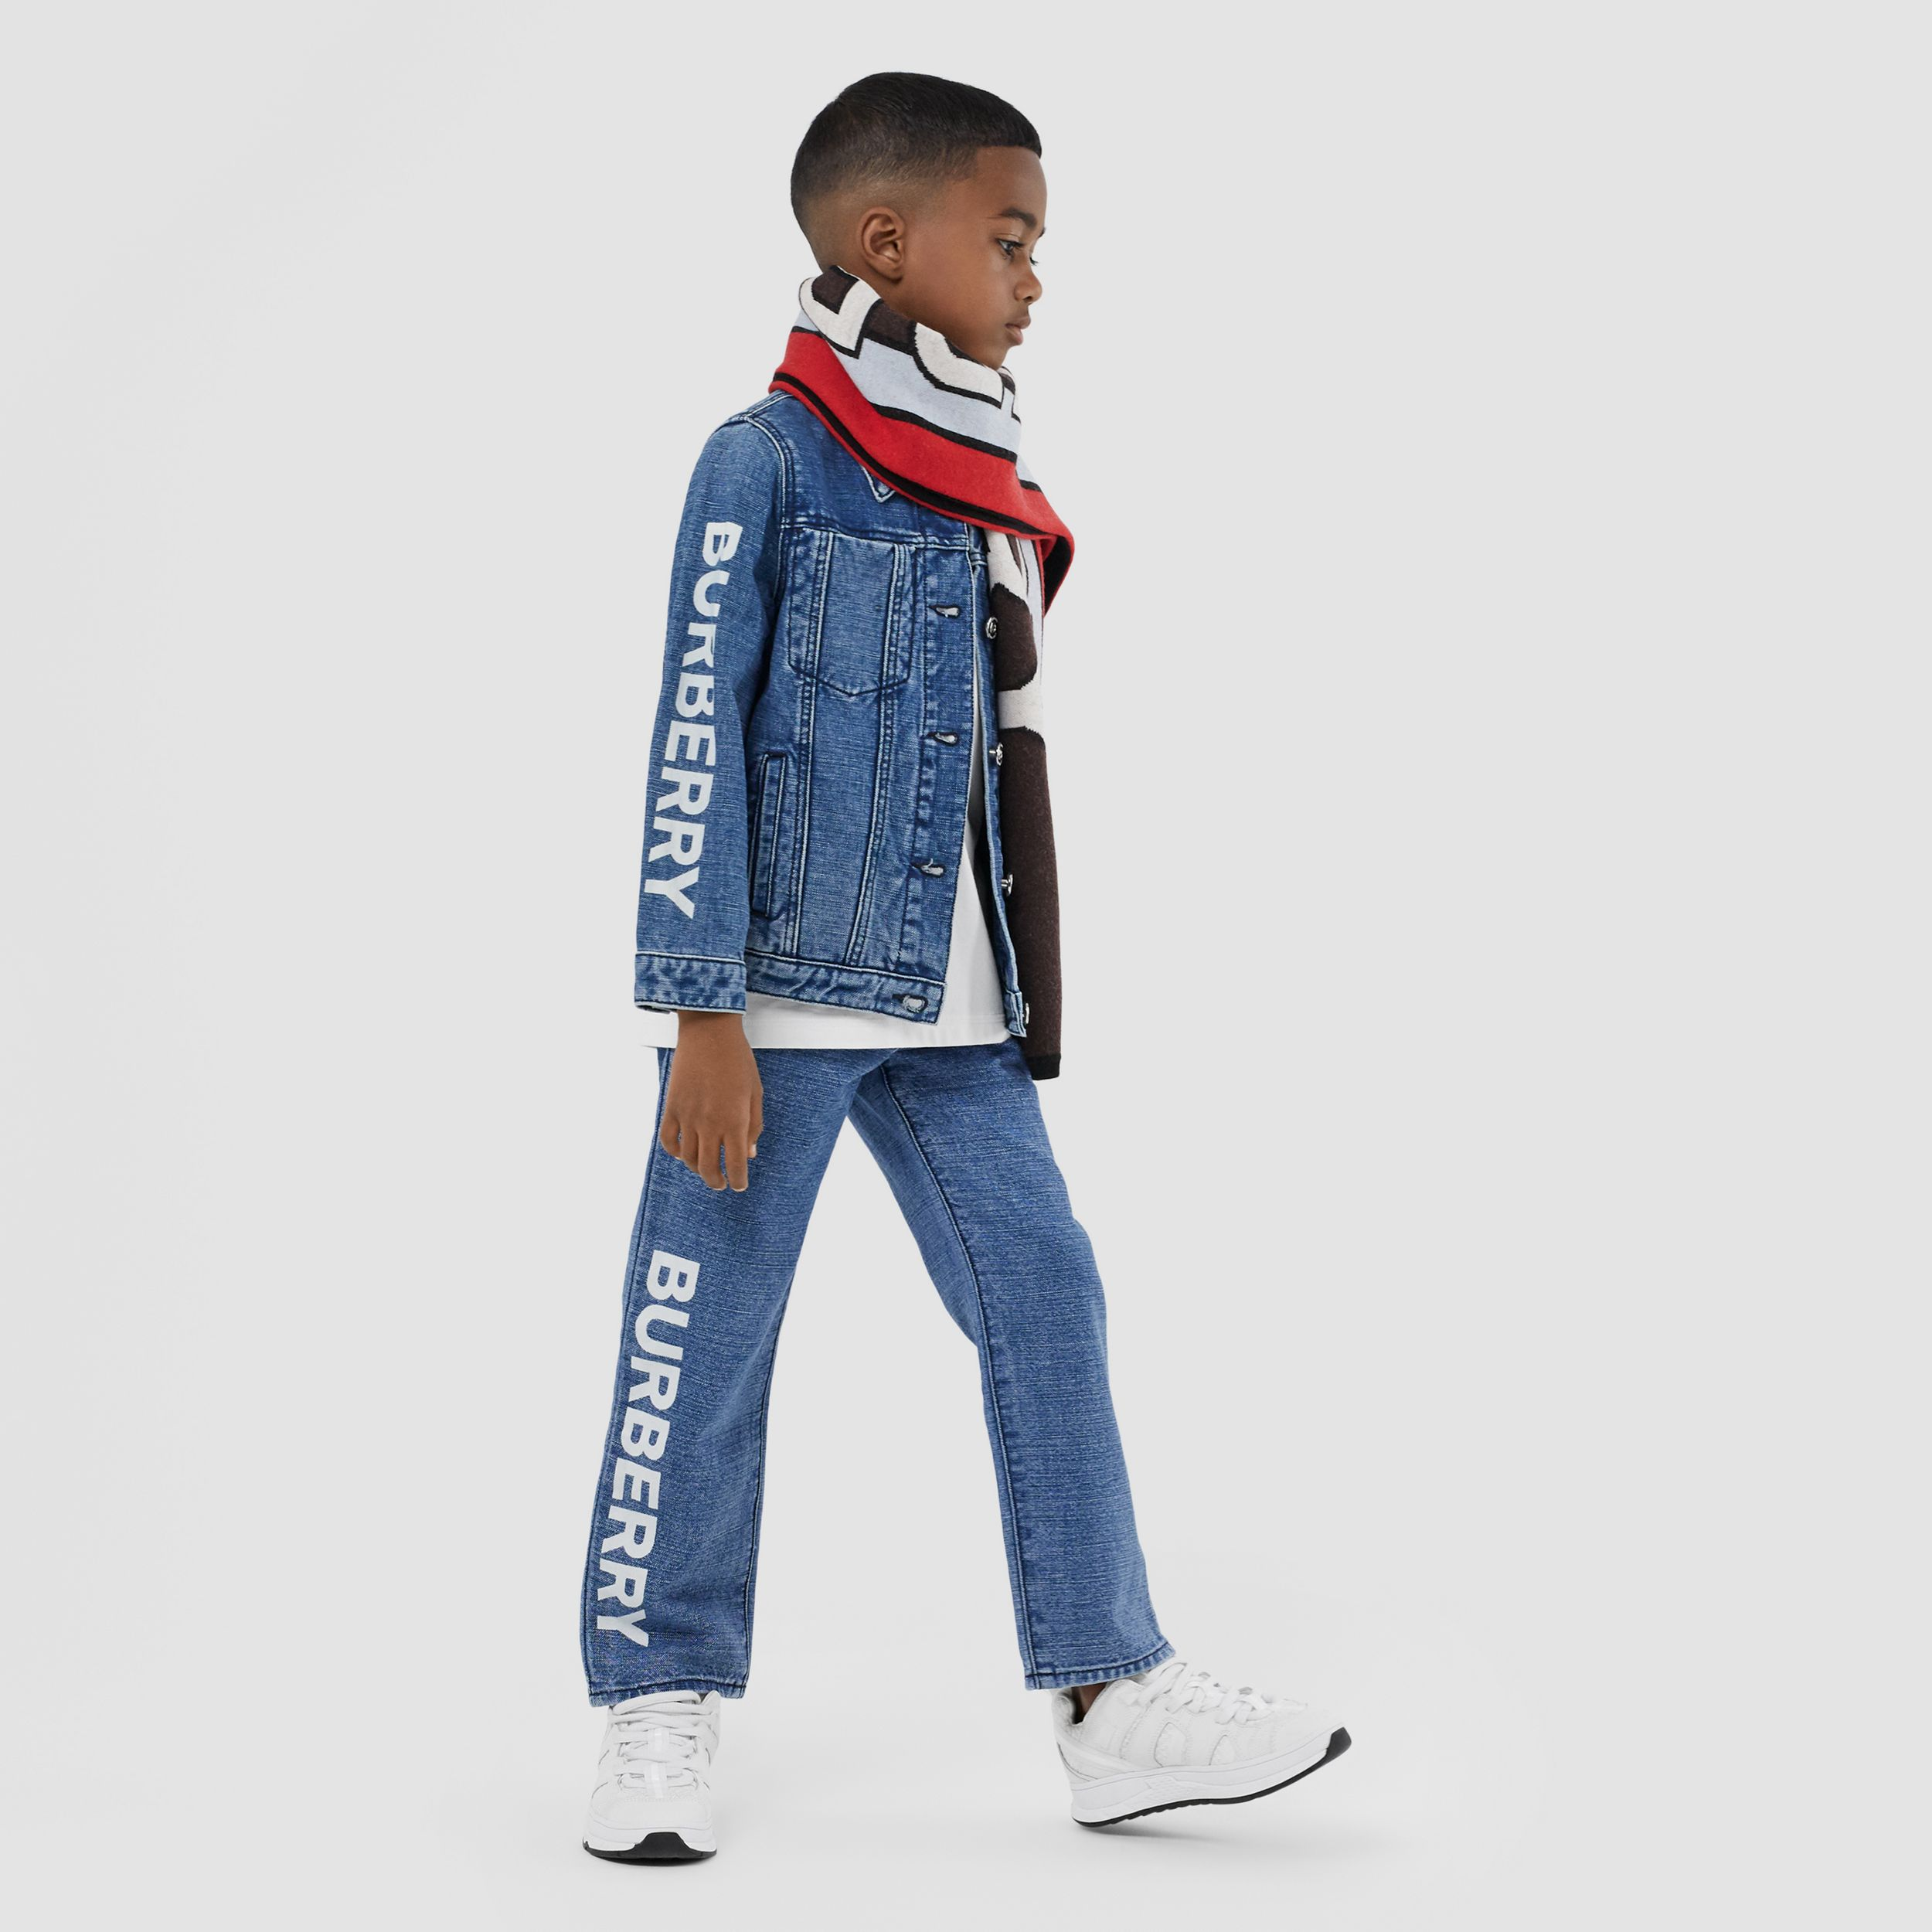 Logo Print Japanese Denim Jacket in Indigo | Burberry - 4